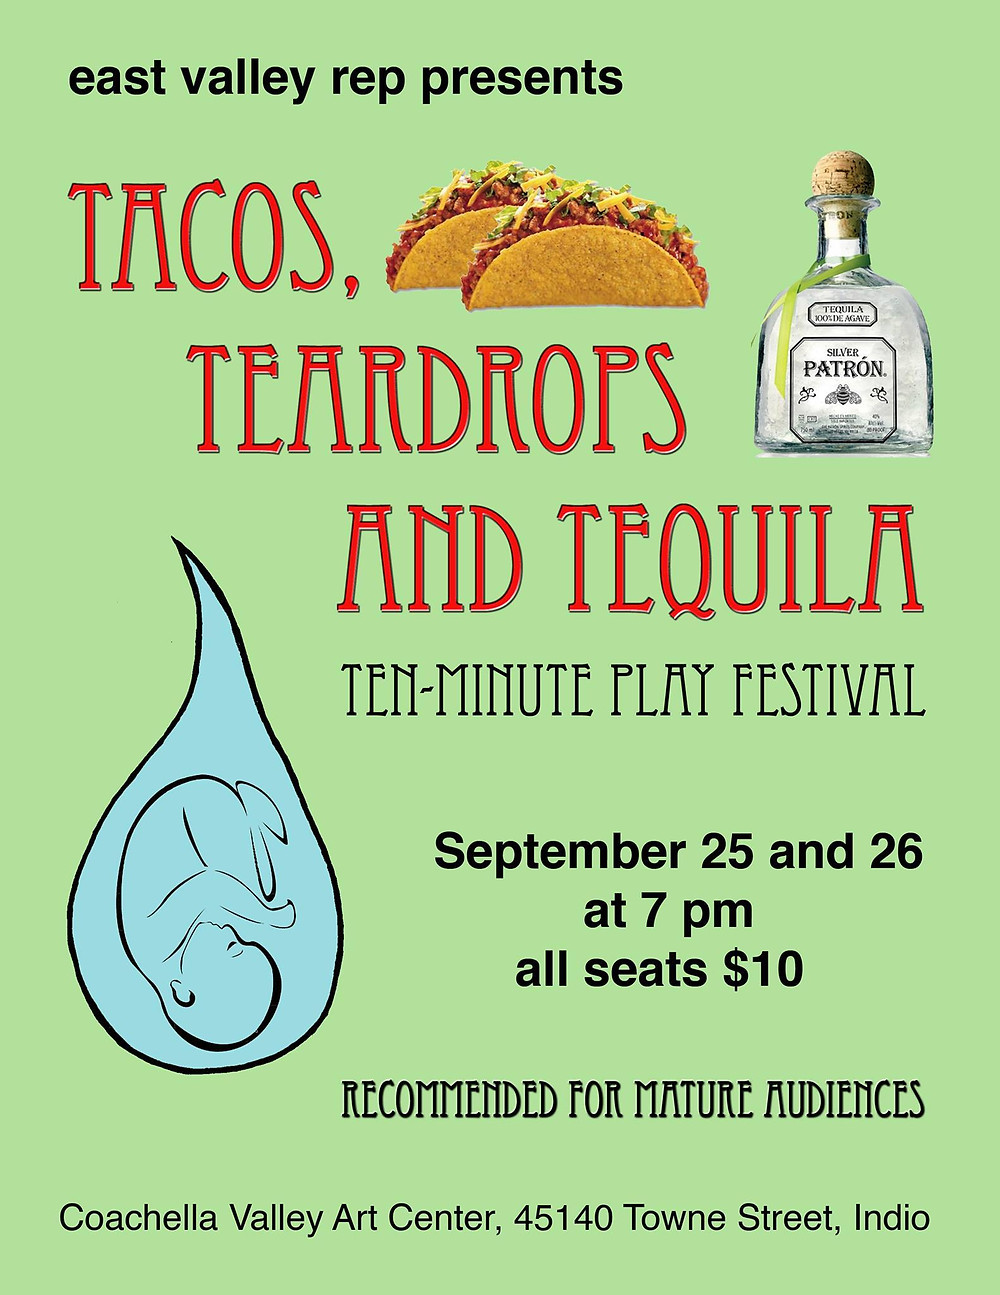 Tacos, Teardrops, and Tequila East Valley Rep